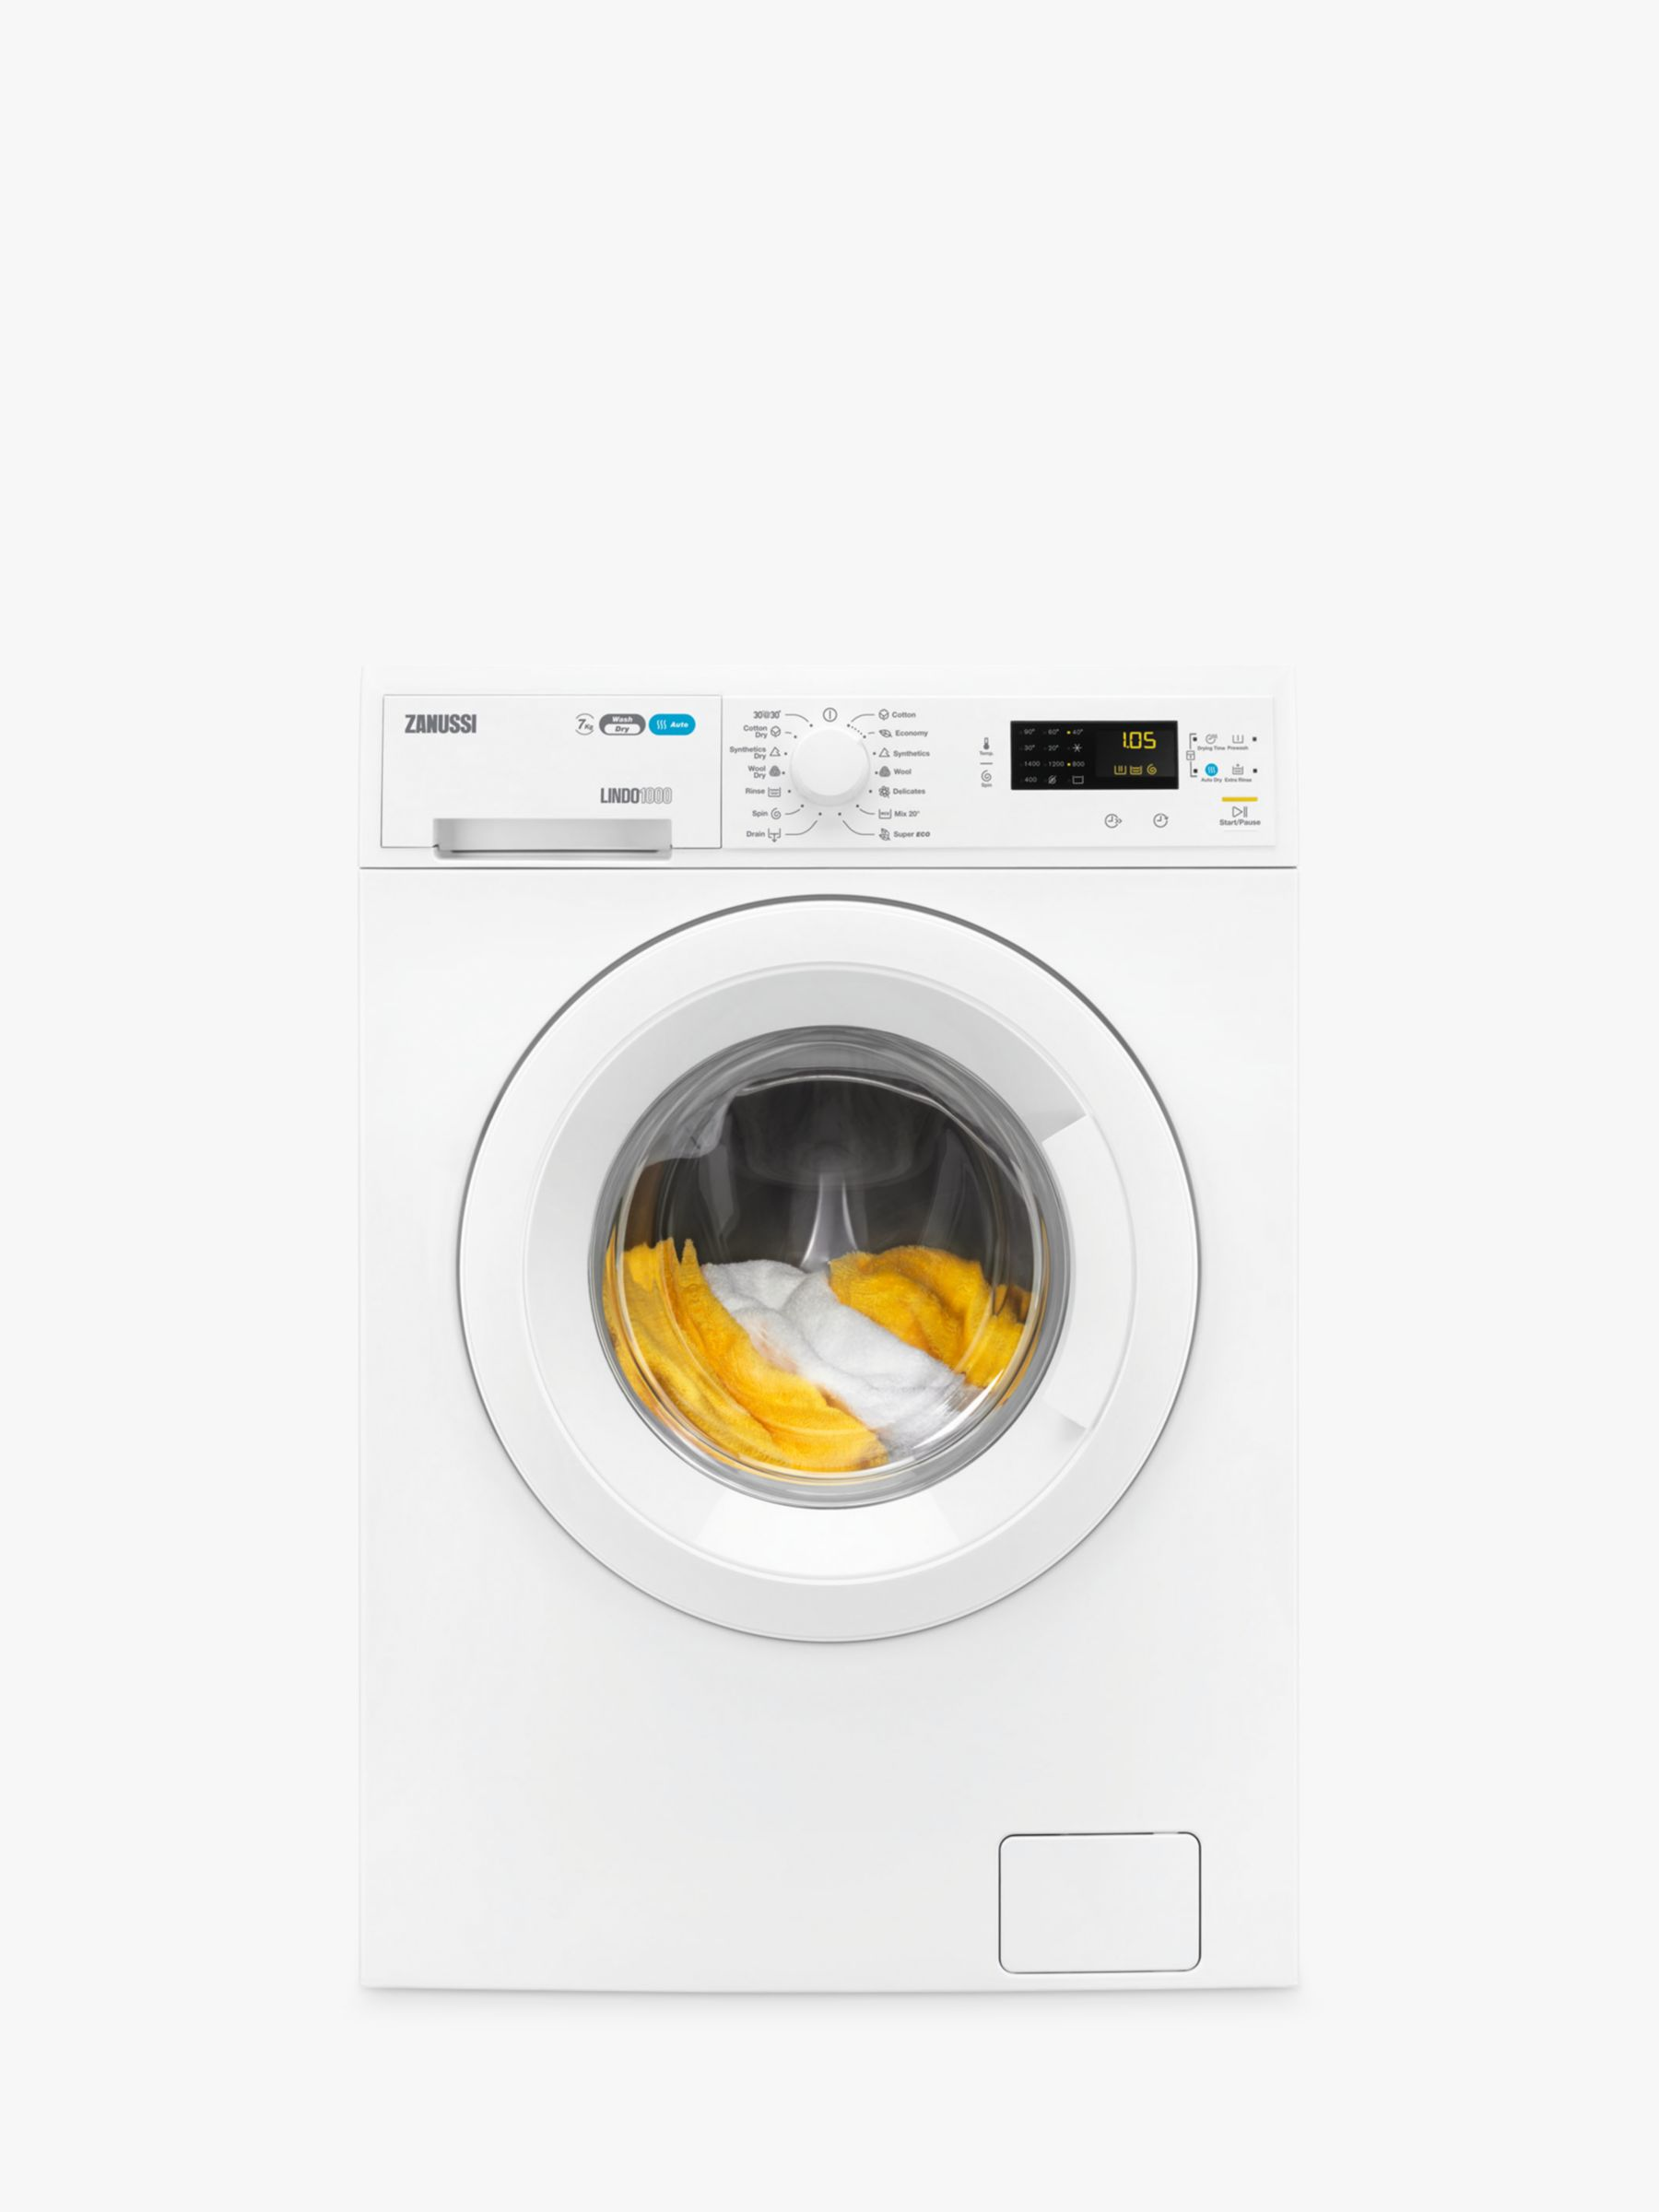 Zanussi Zanussi ZWD71463NW Freestanding Washer Dryer, 7kg Wash/4kg Dry Load, B Energy Rating, 1400rpm Spin, White